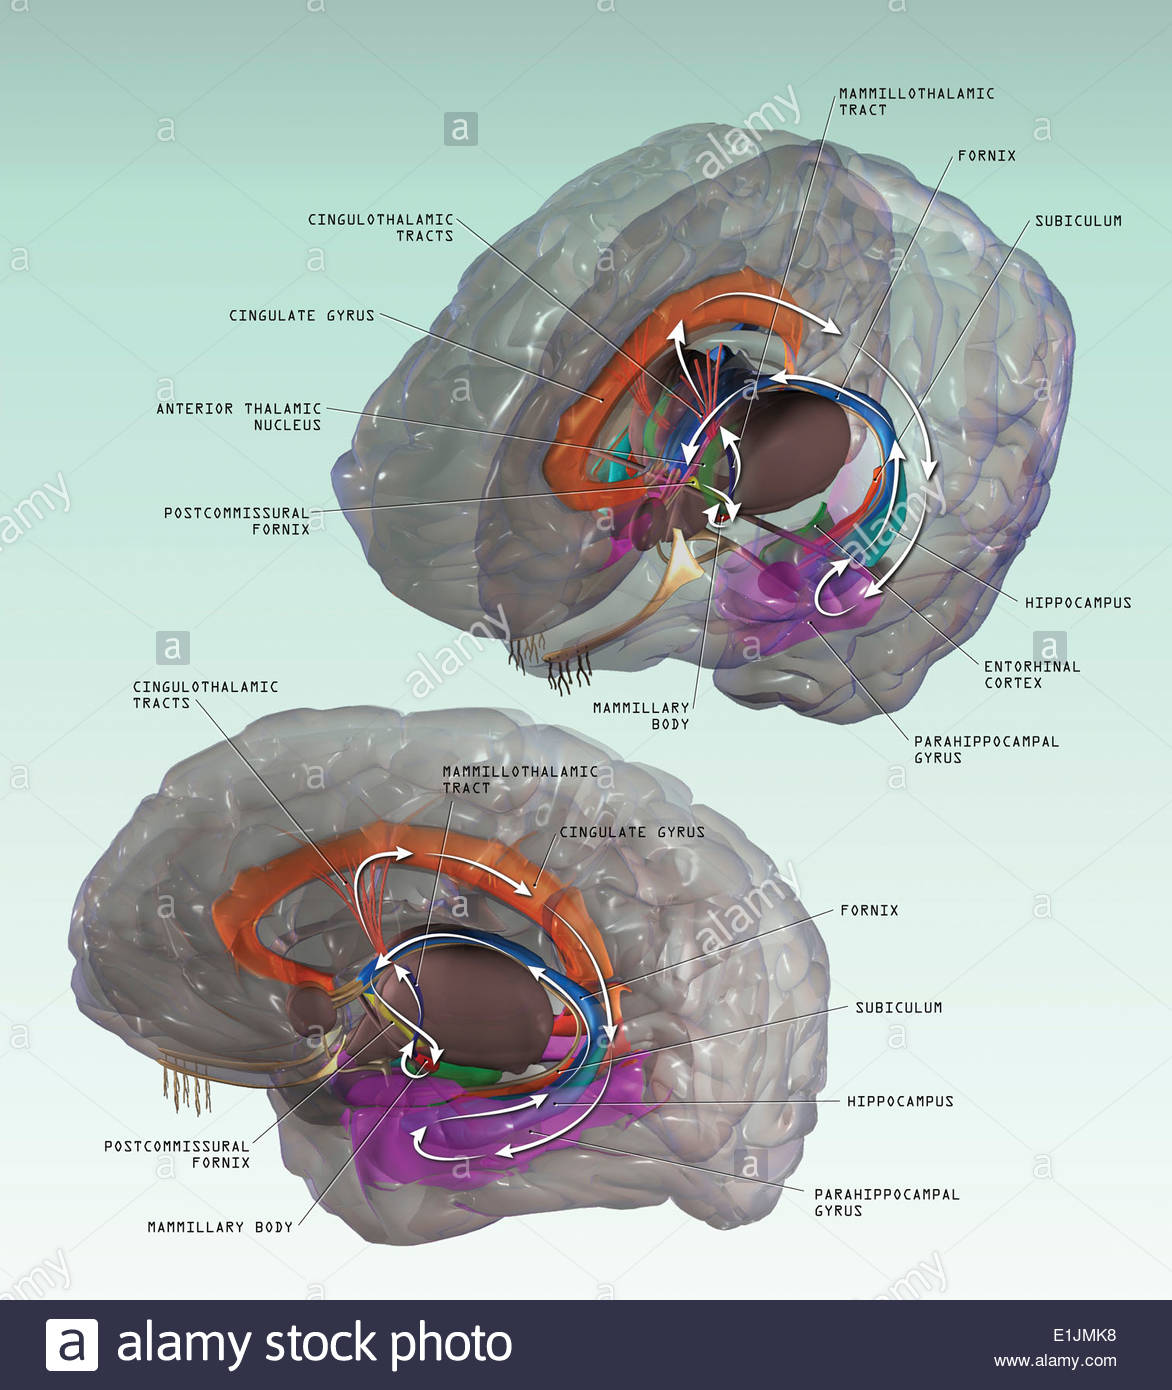 3D illustration of the Papez Circuit in human brain. - Stock Image